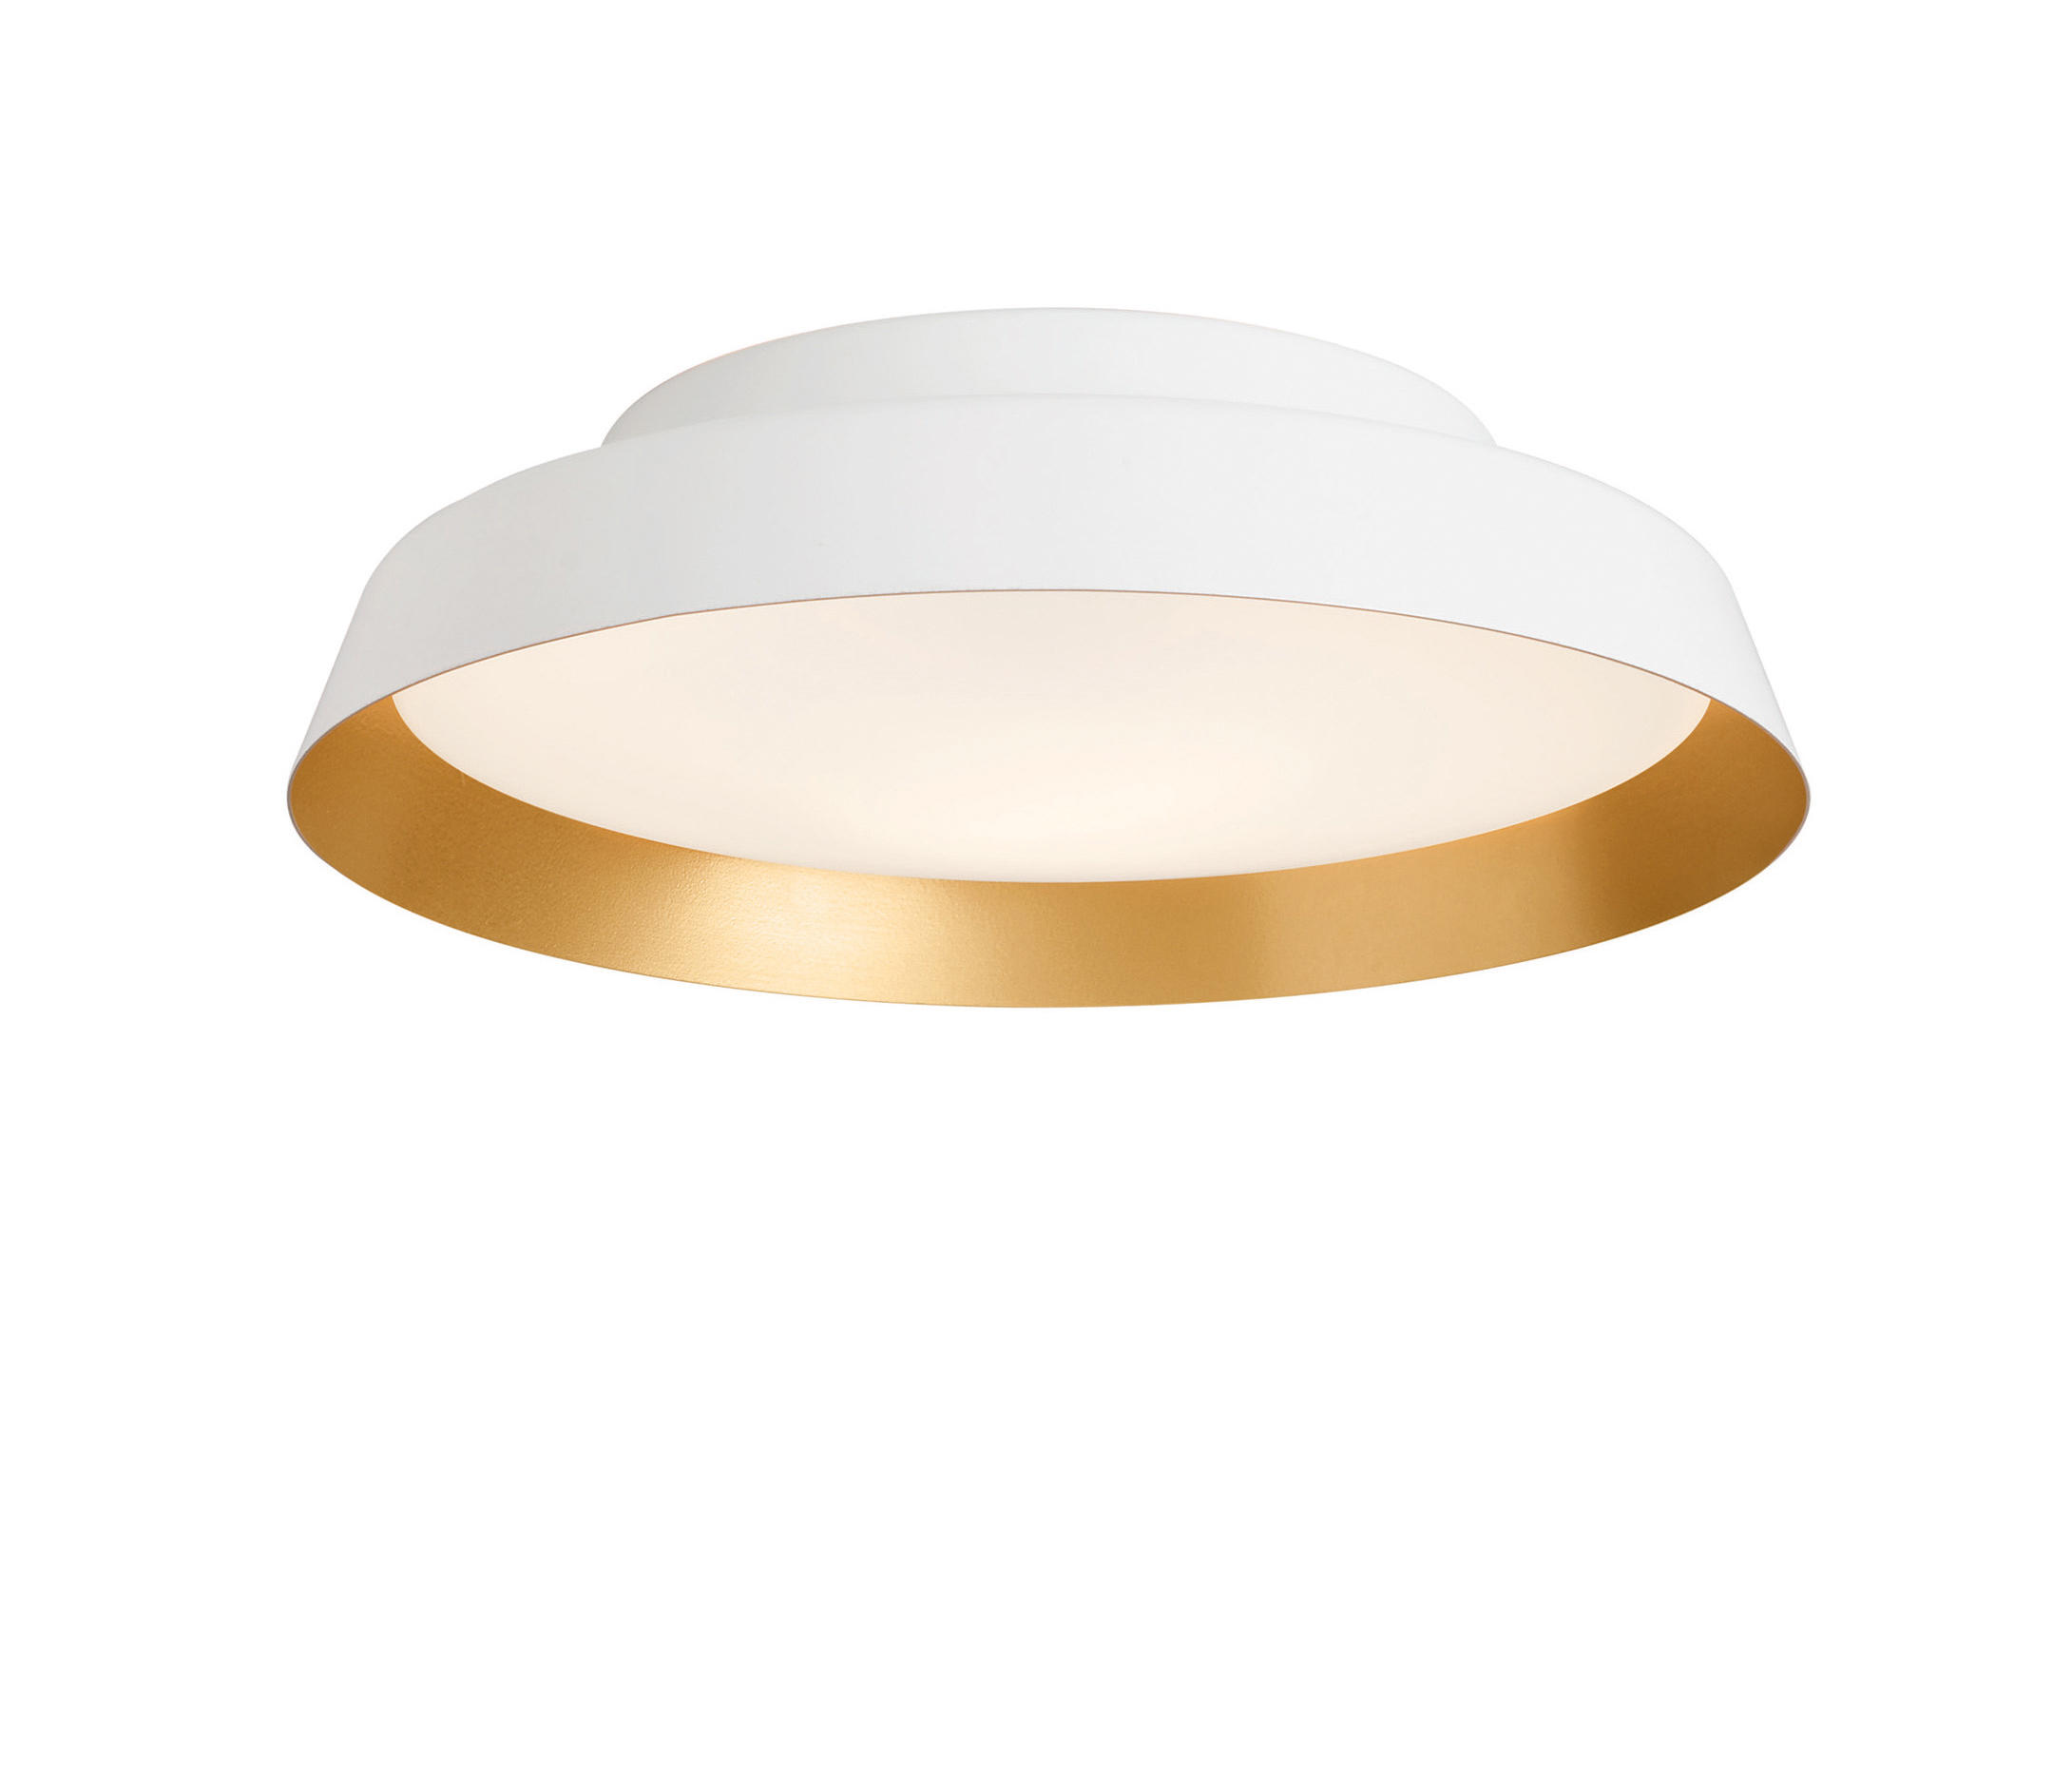 tag cheap largewhite large lampshade bluewhite red shade with band shades of lamps photo lining tags gold for size white full table clip exquisite and inspirations inspiring lamp